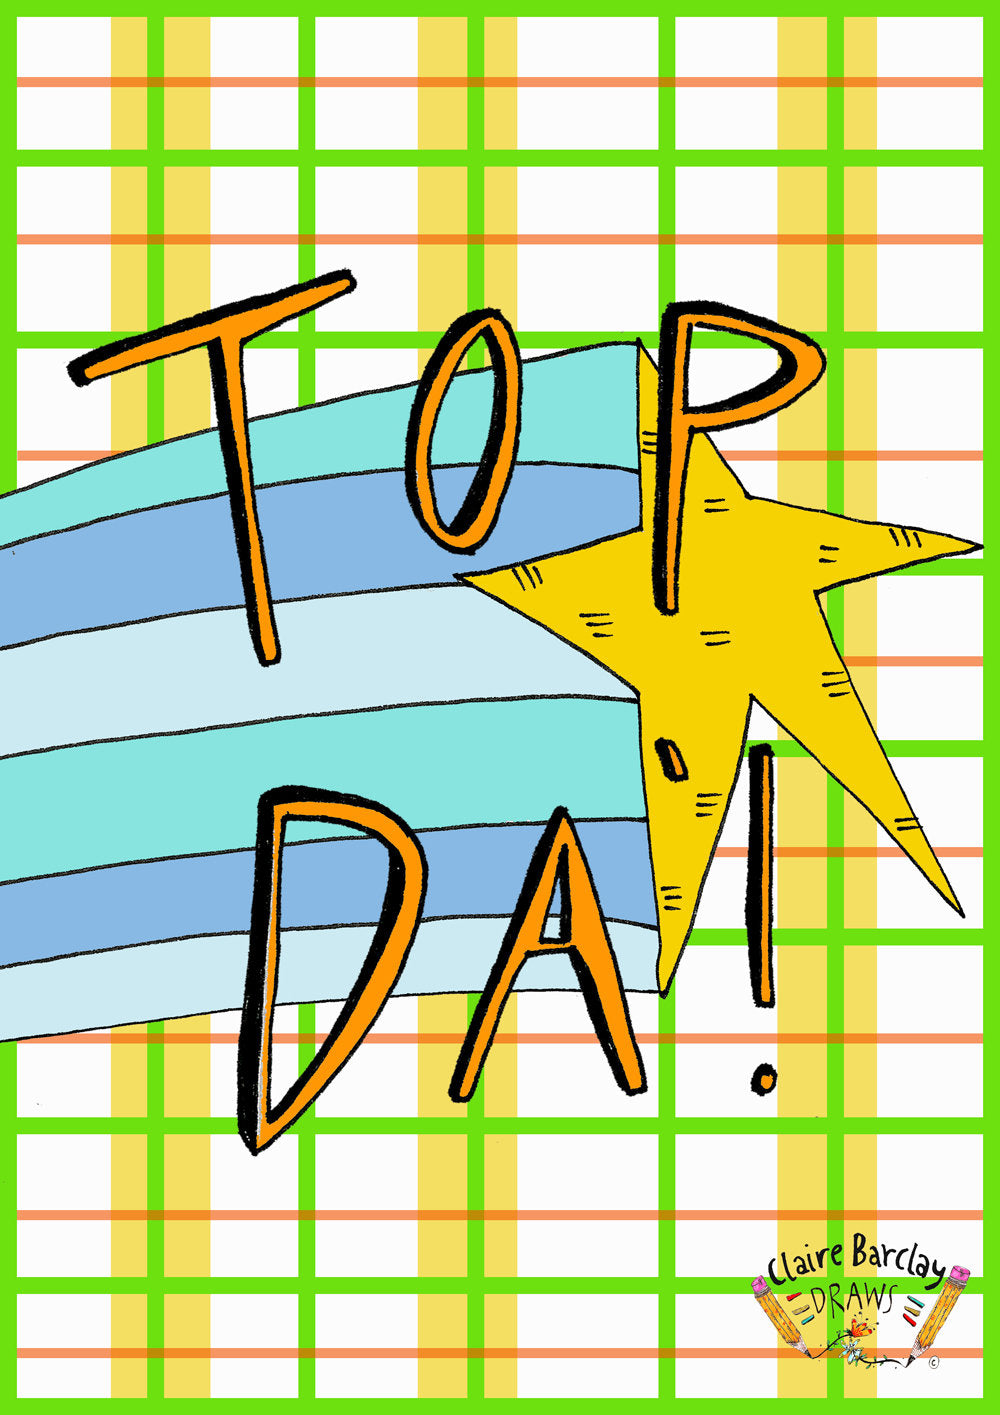 TOP DA', Father's Day Greetings Card, Scottish Slang Typography Dad's Day Card